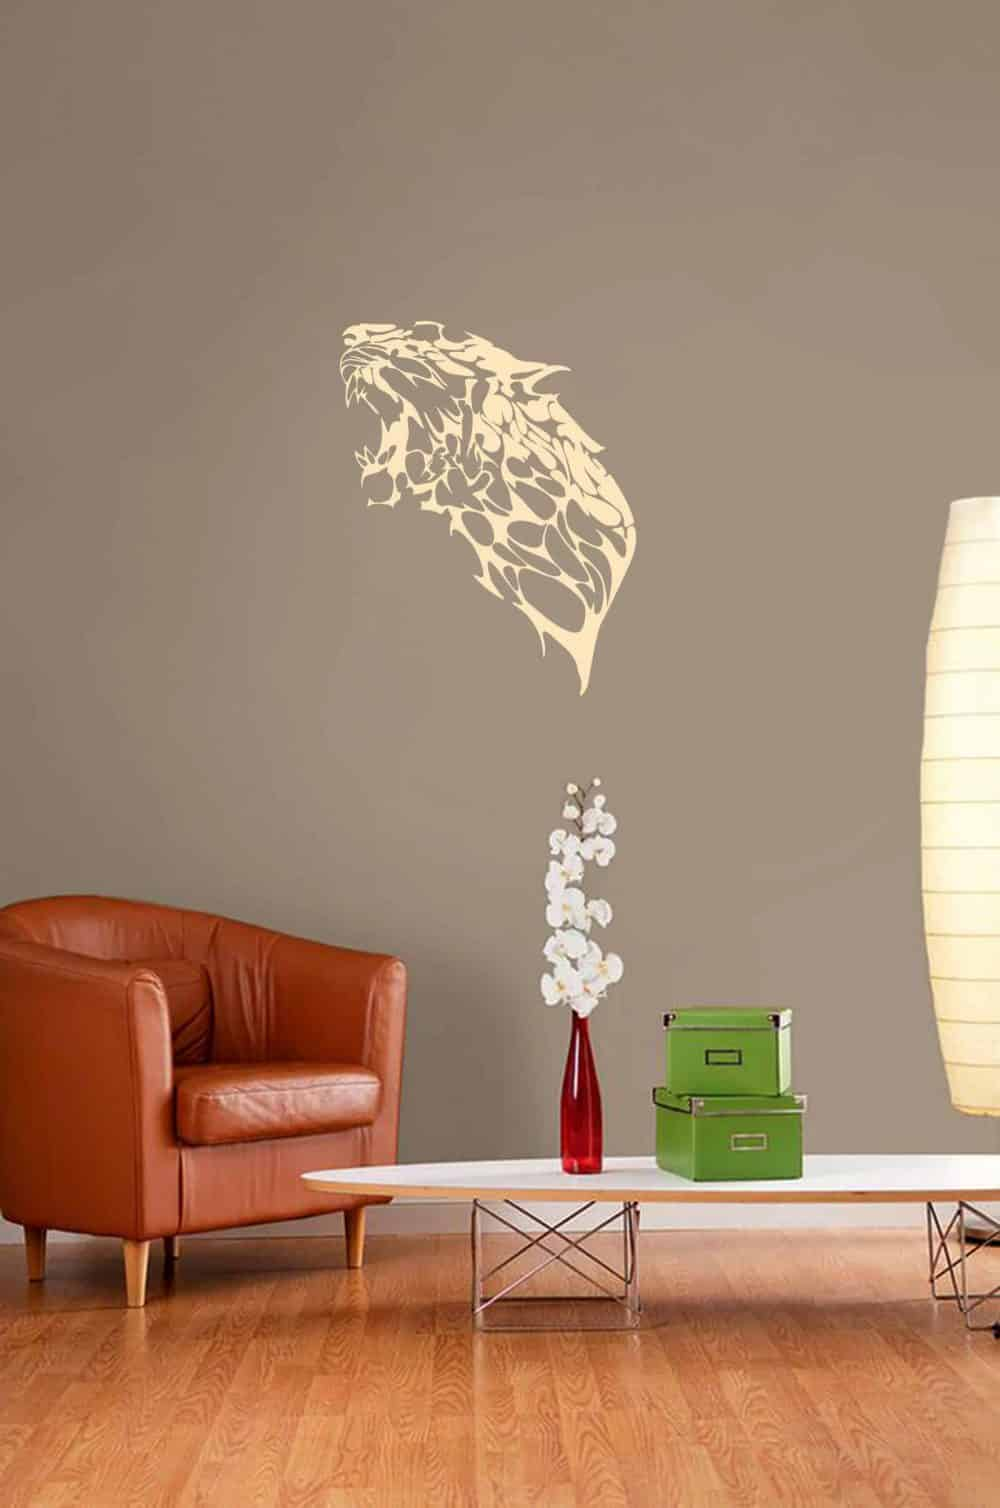 Roar of the Beast Living Wall Sticker